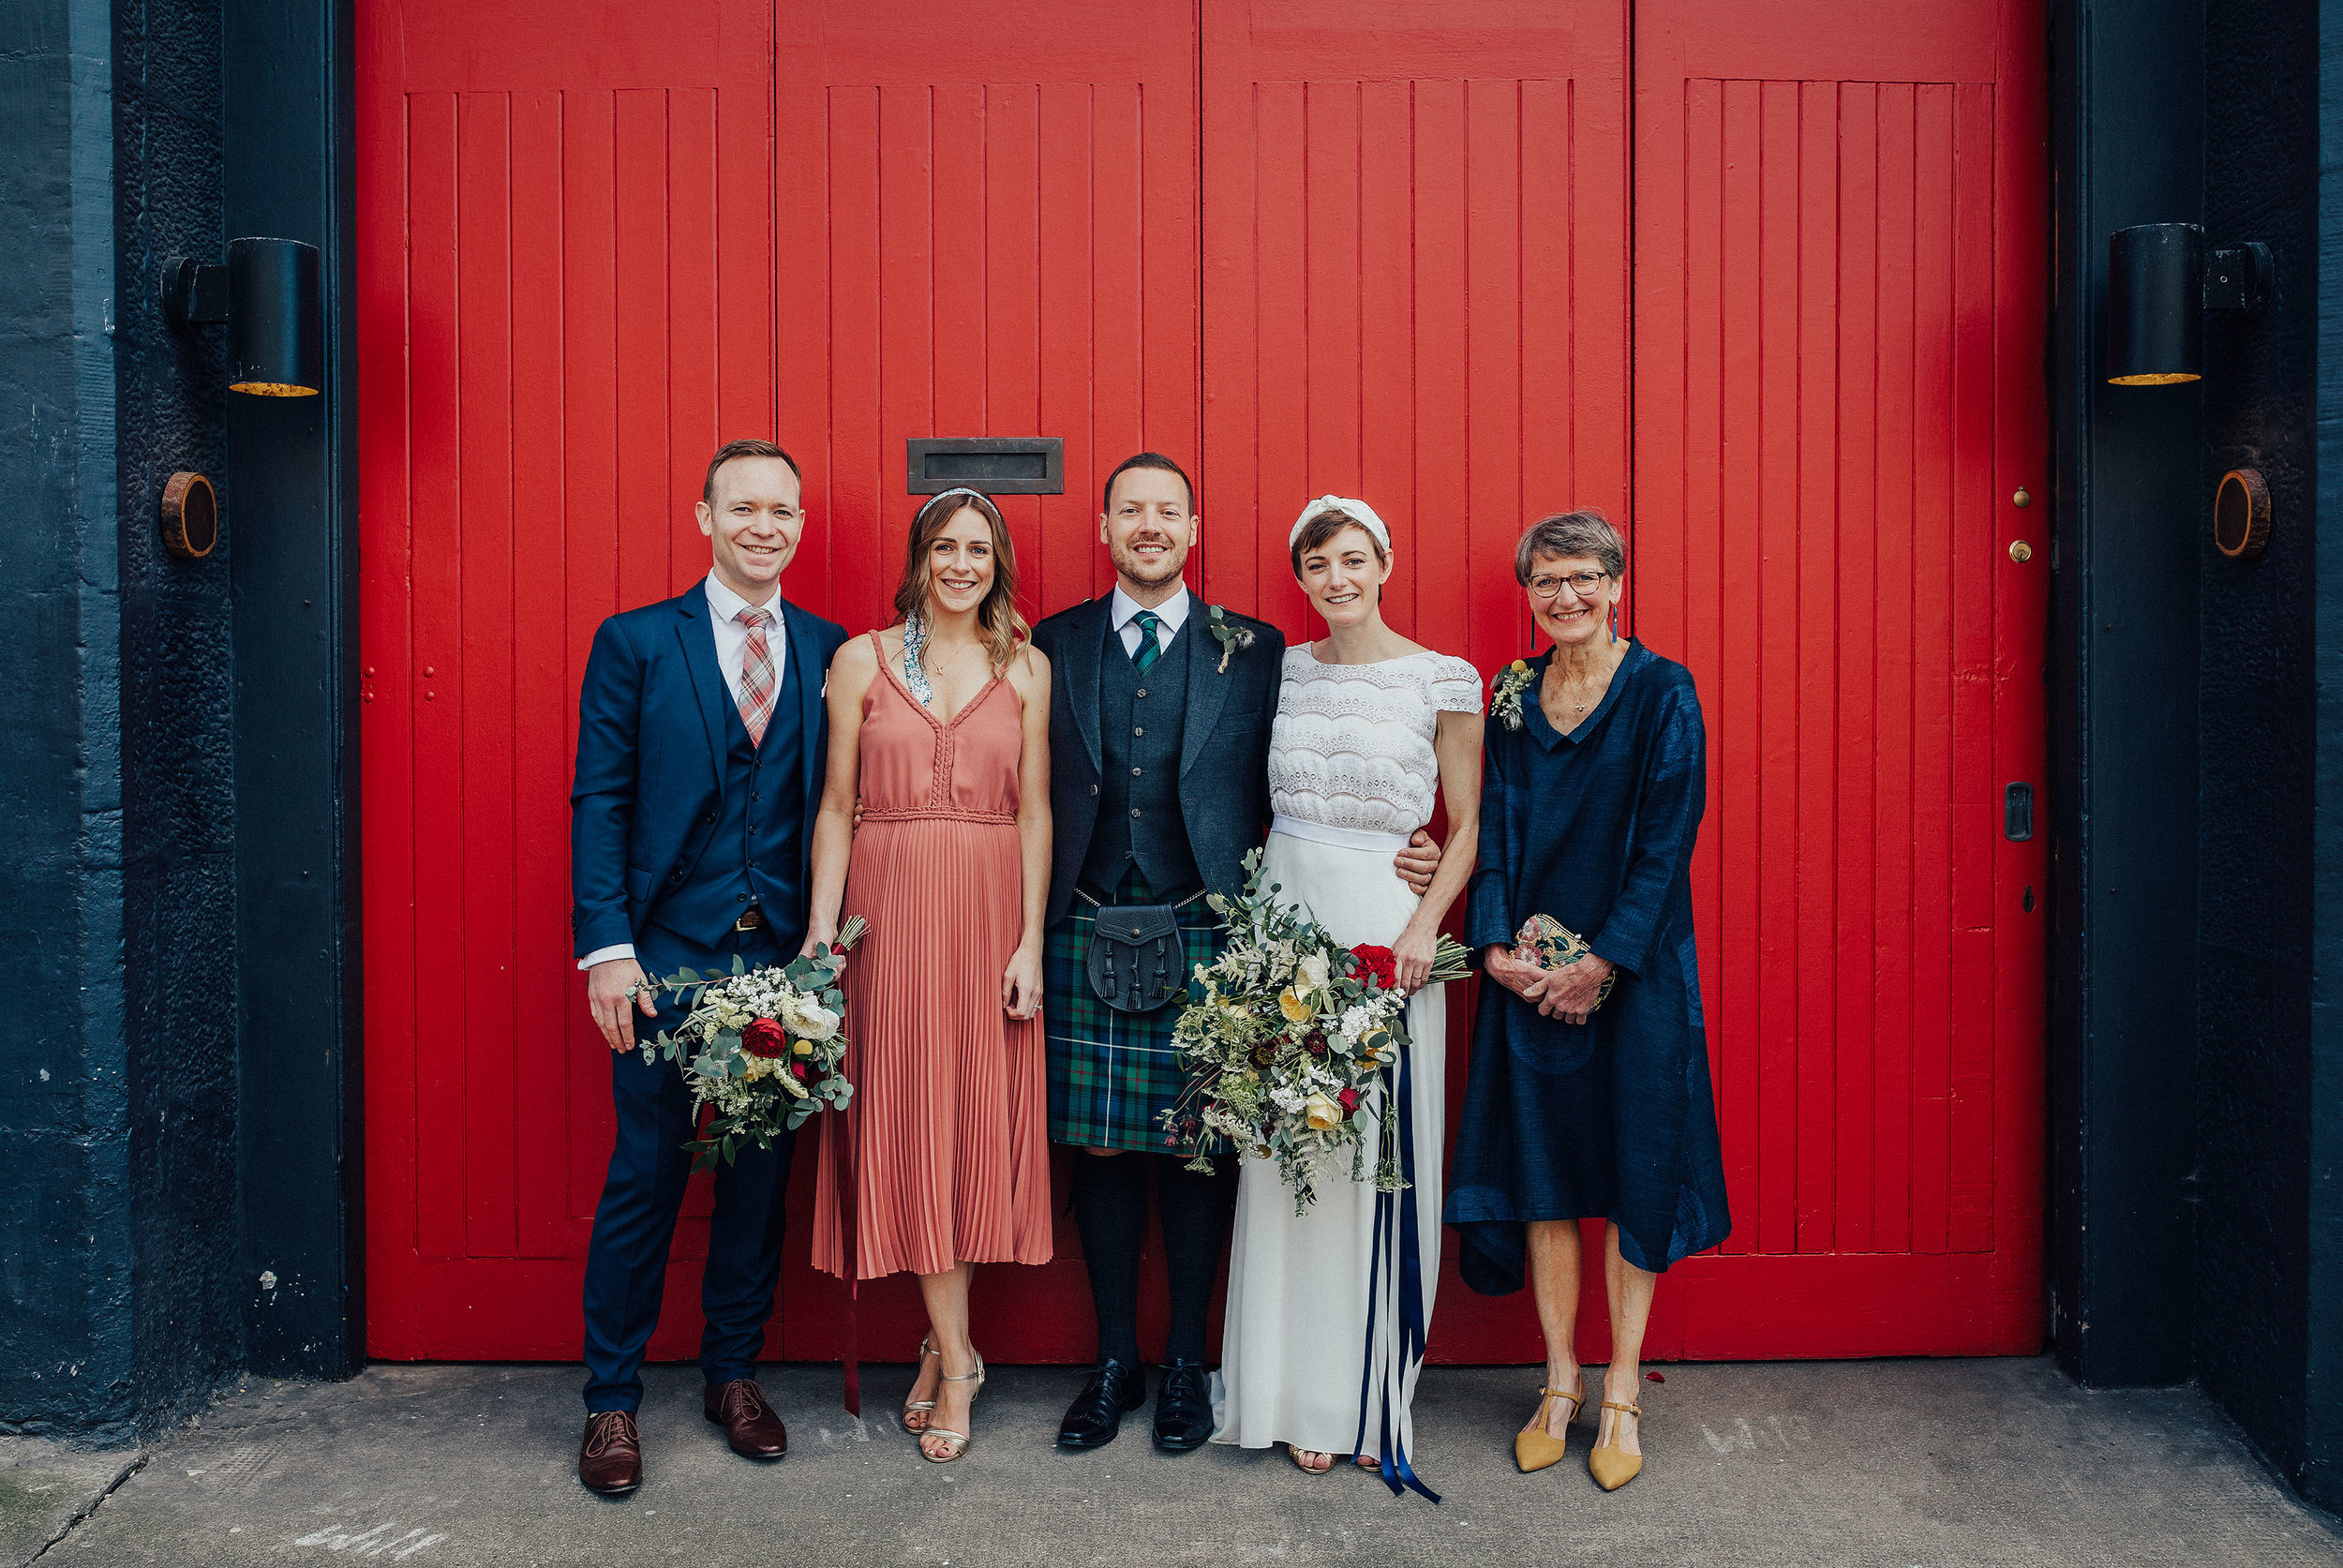 TIMBERYARD_EDINBURGH_WEDDING_PJ_PHILLIPS_PHOTOGRAPHY_139.jpg